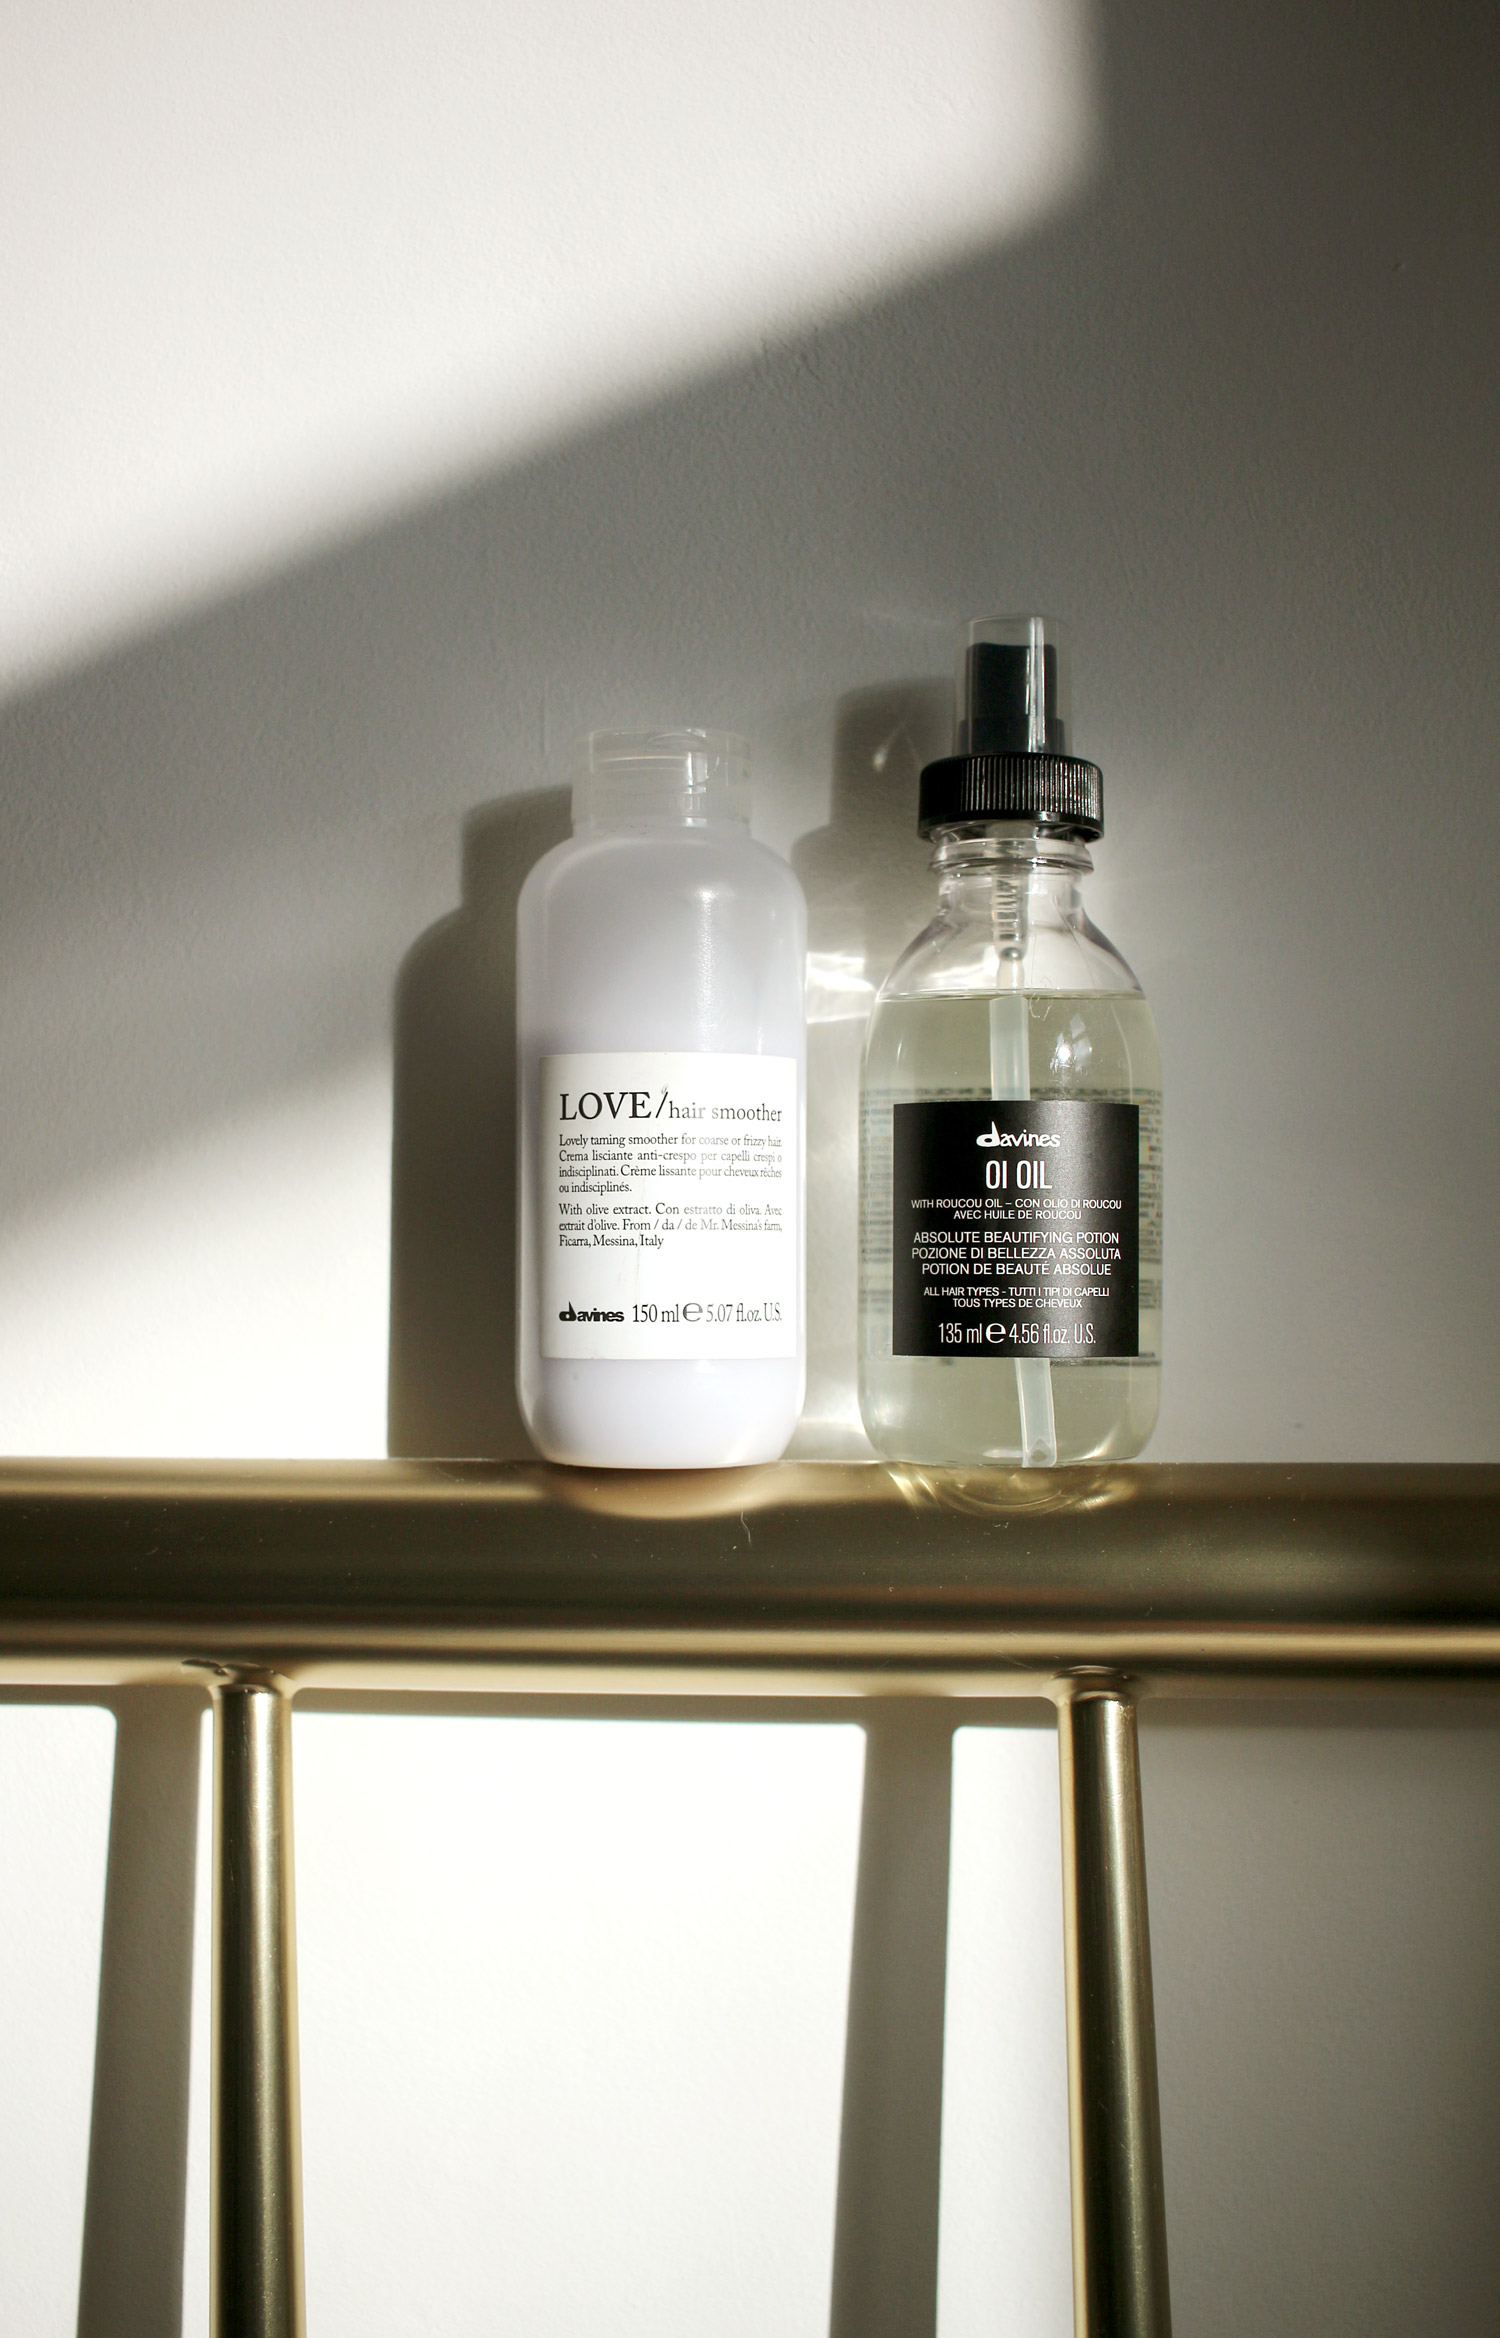 hair-products-davines-review-redken-blondage-thelovecatsinc-9